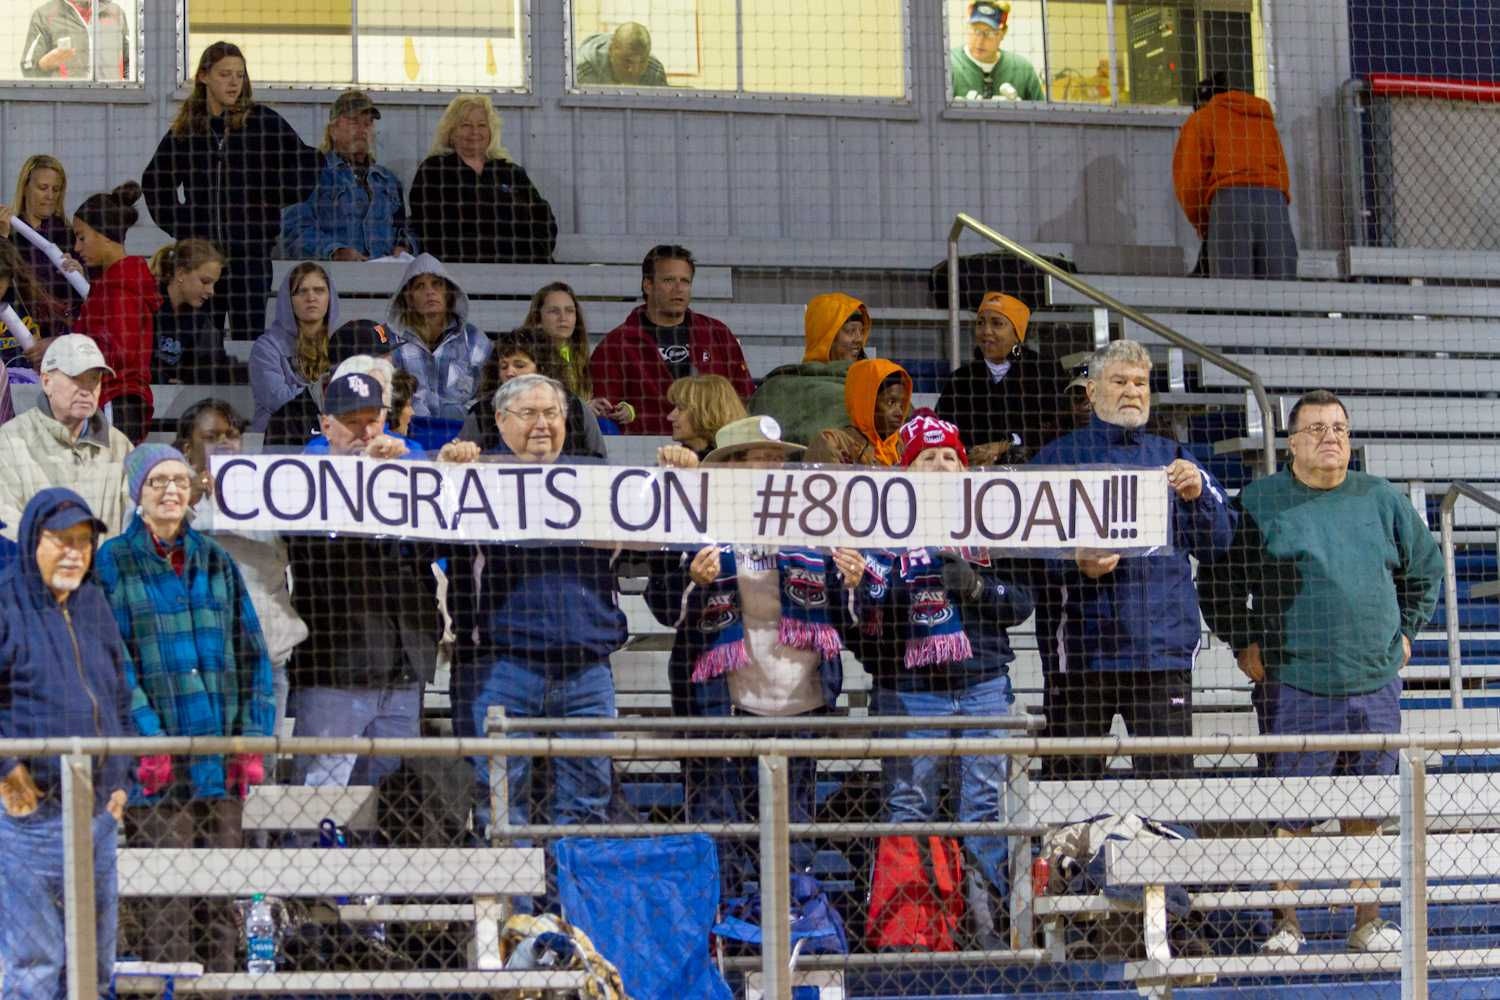 Fans gather to congratulate head coach Joan Joyce after her 800th career win.